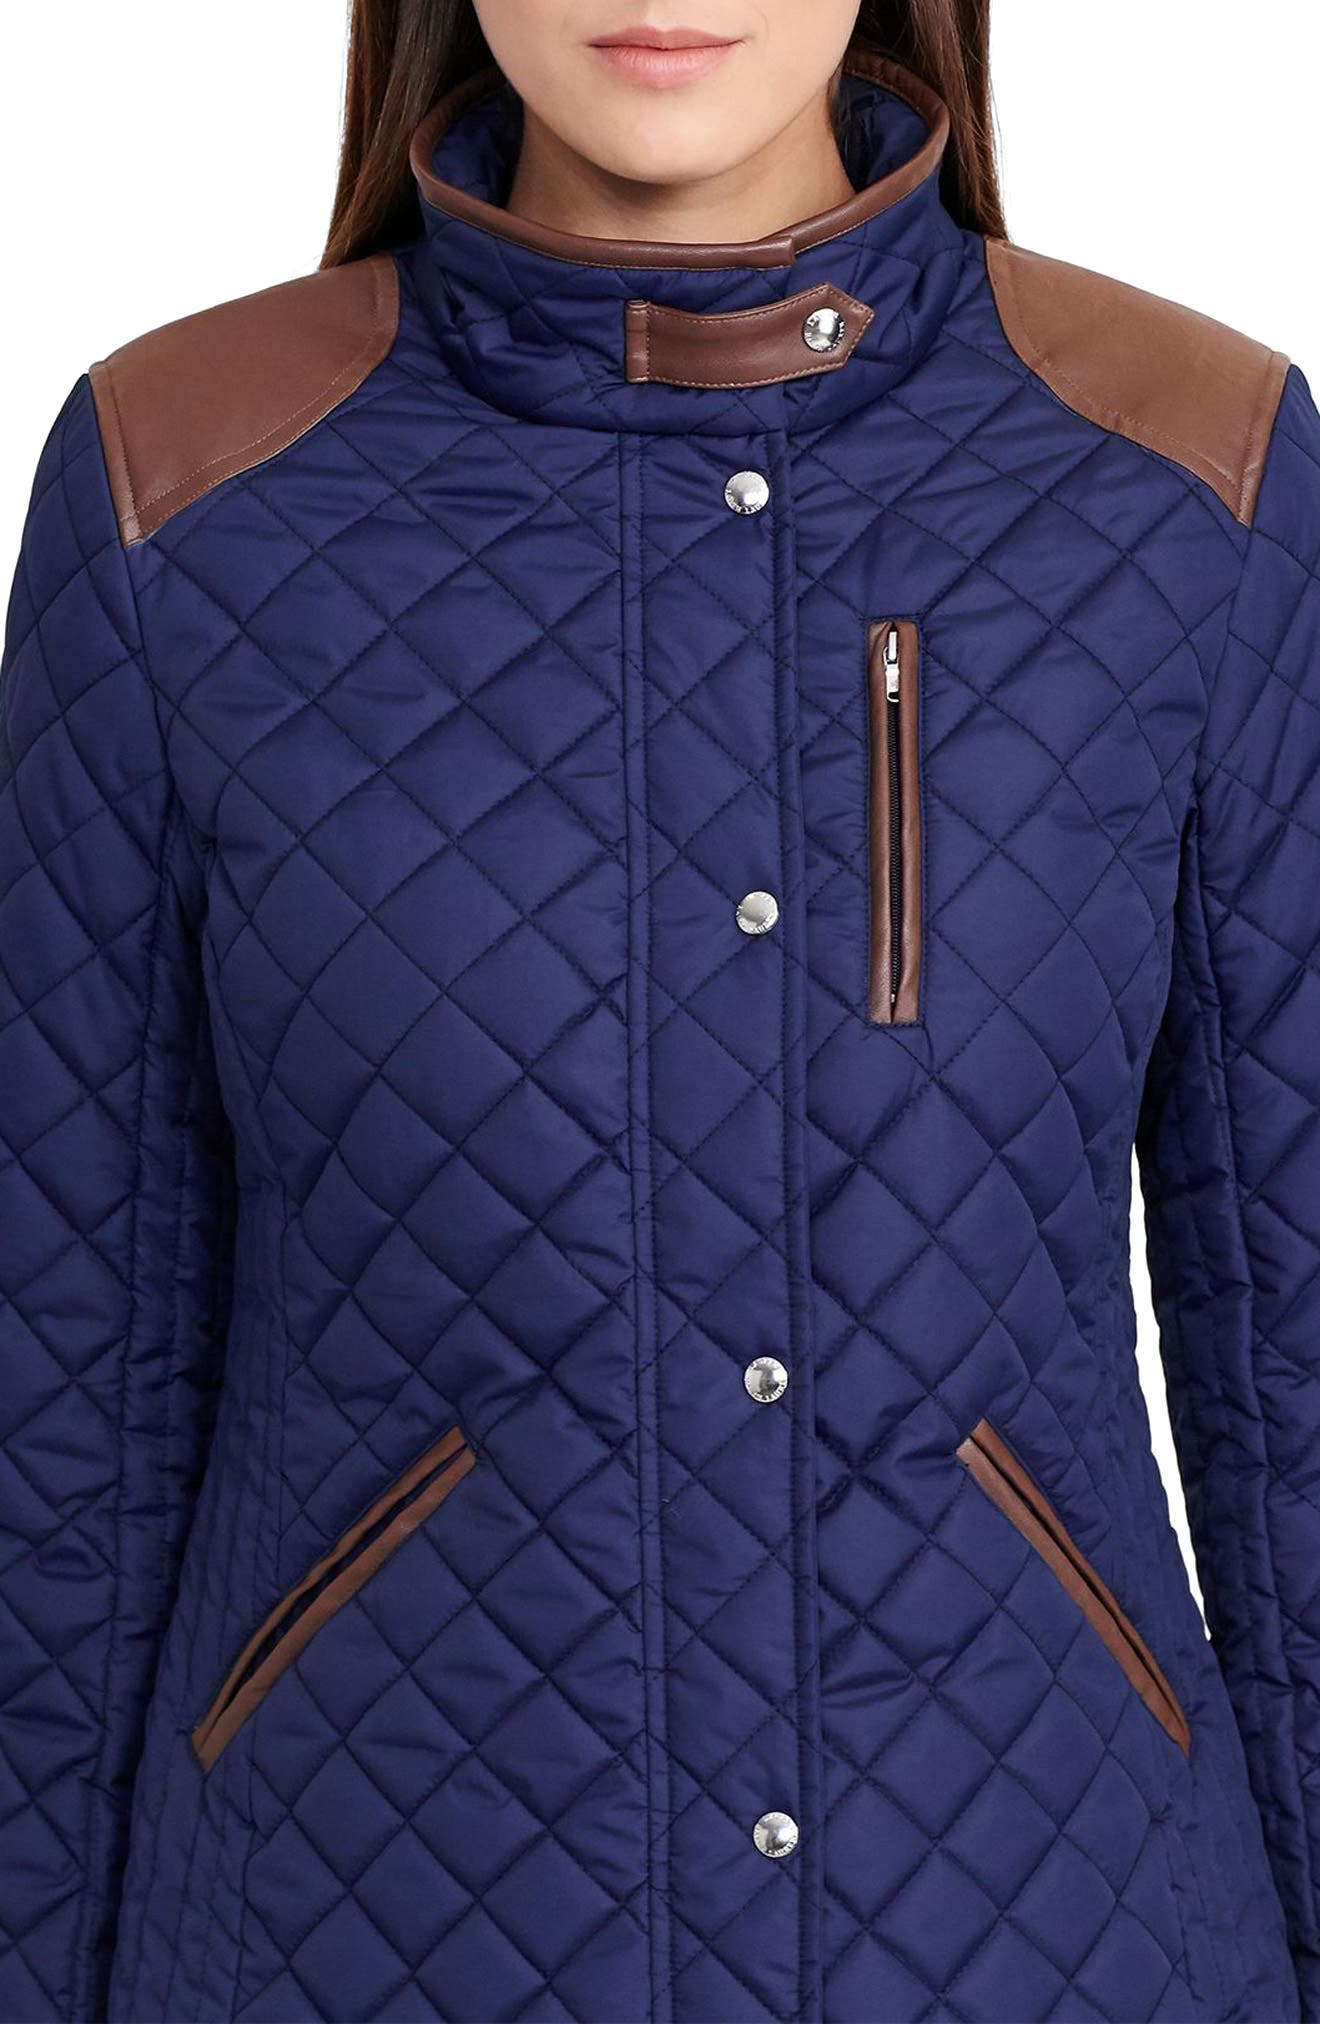 Faux Leather Trim Quilted Jacket,                             Alternate thumbnail 19, color,